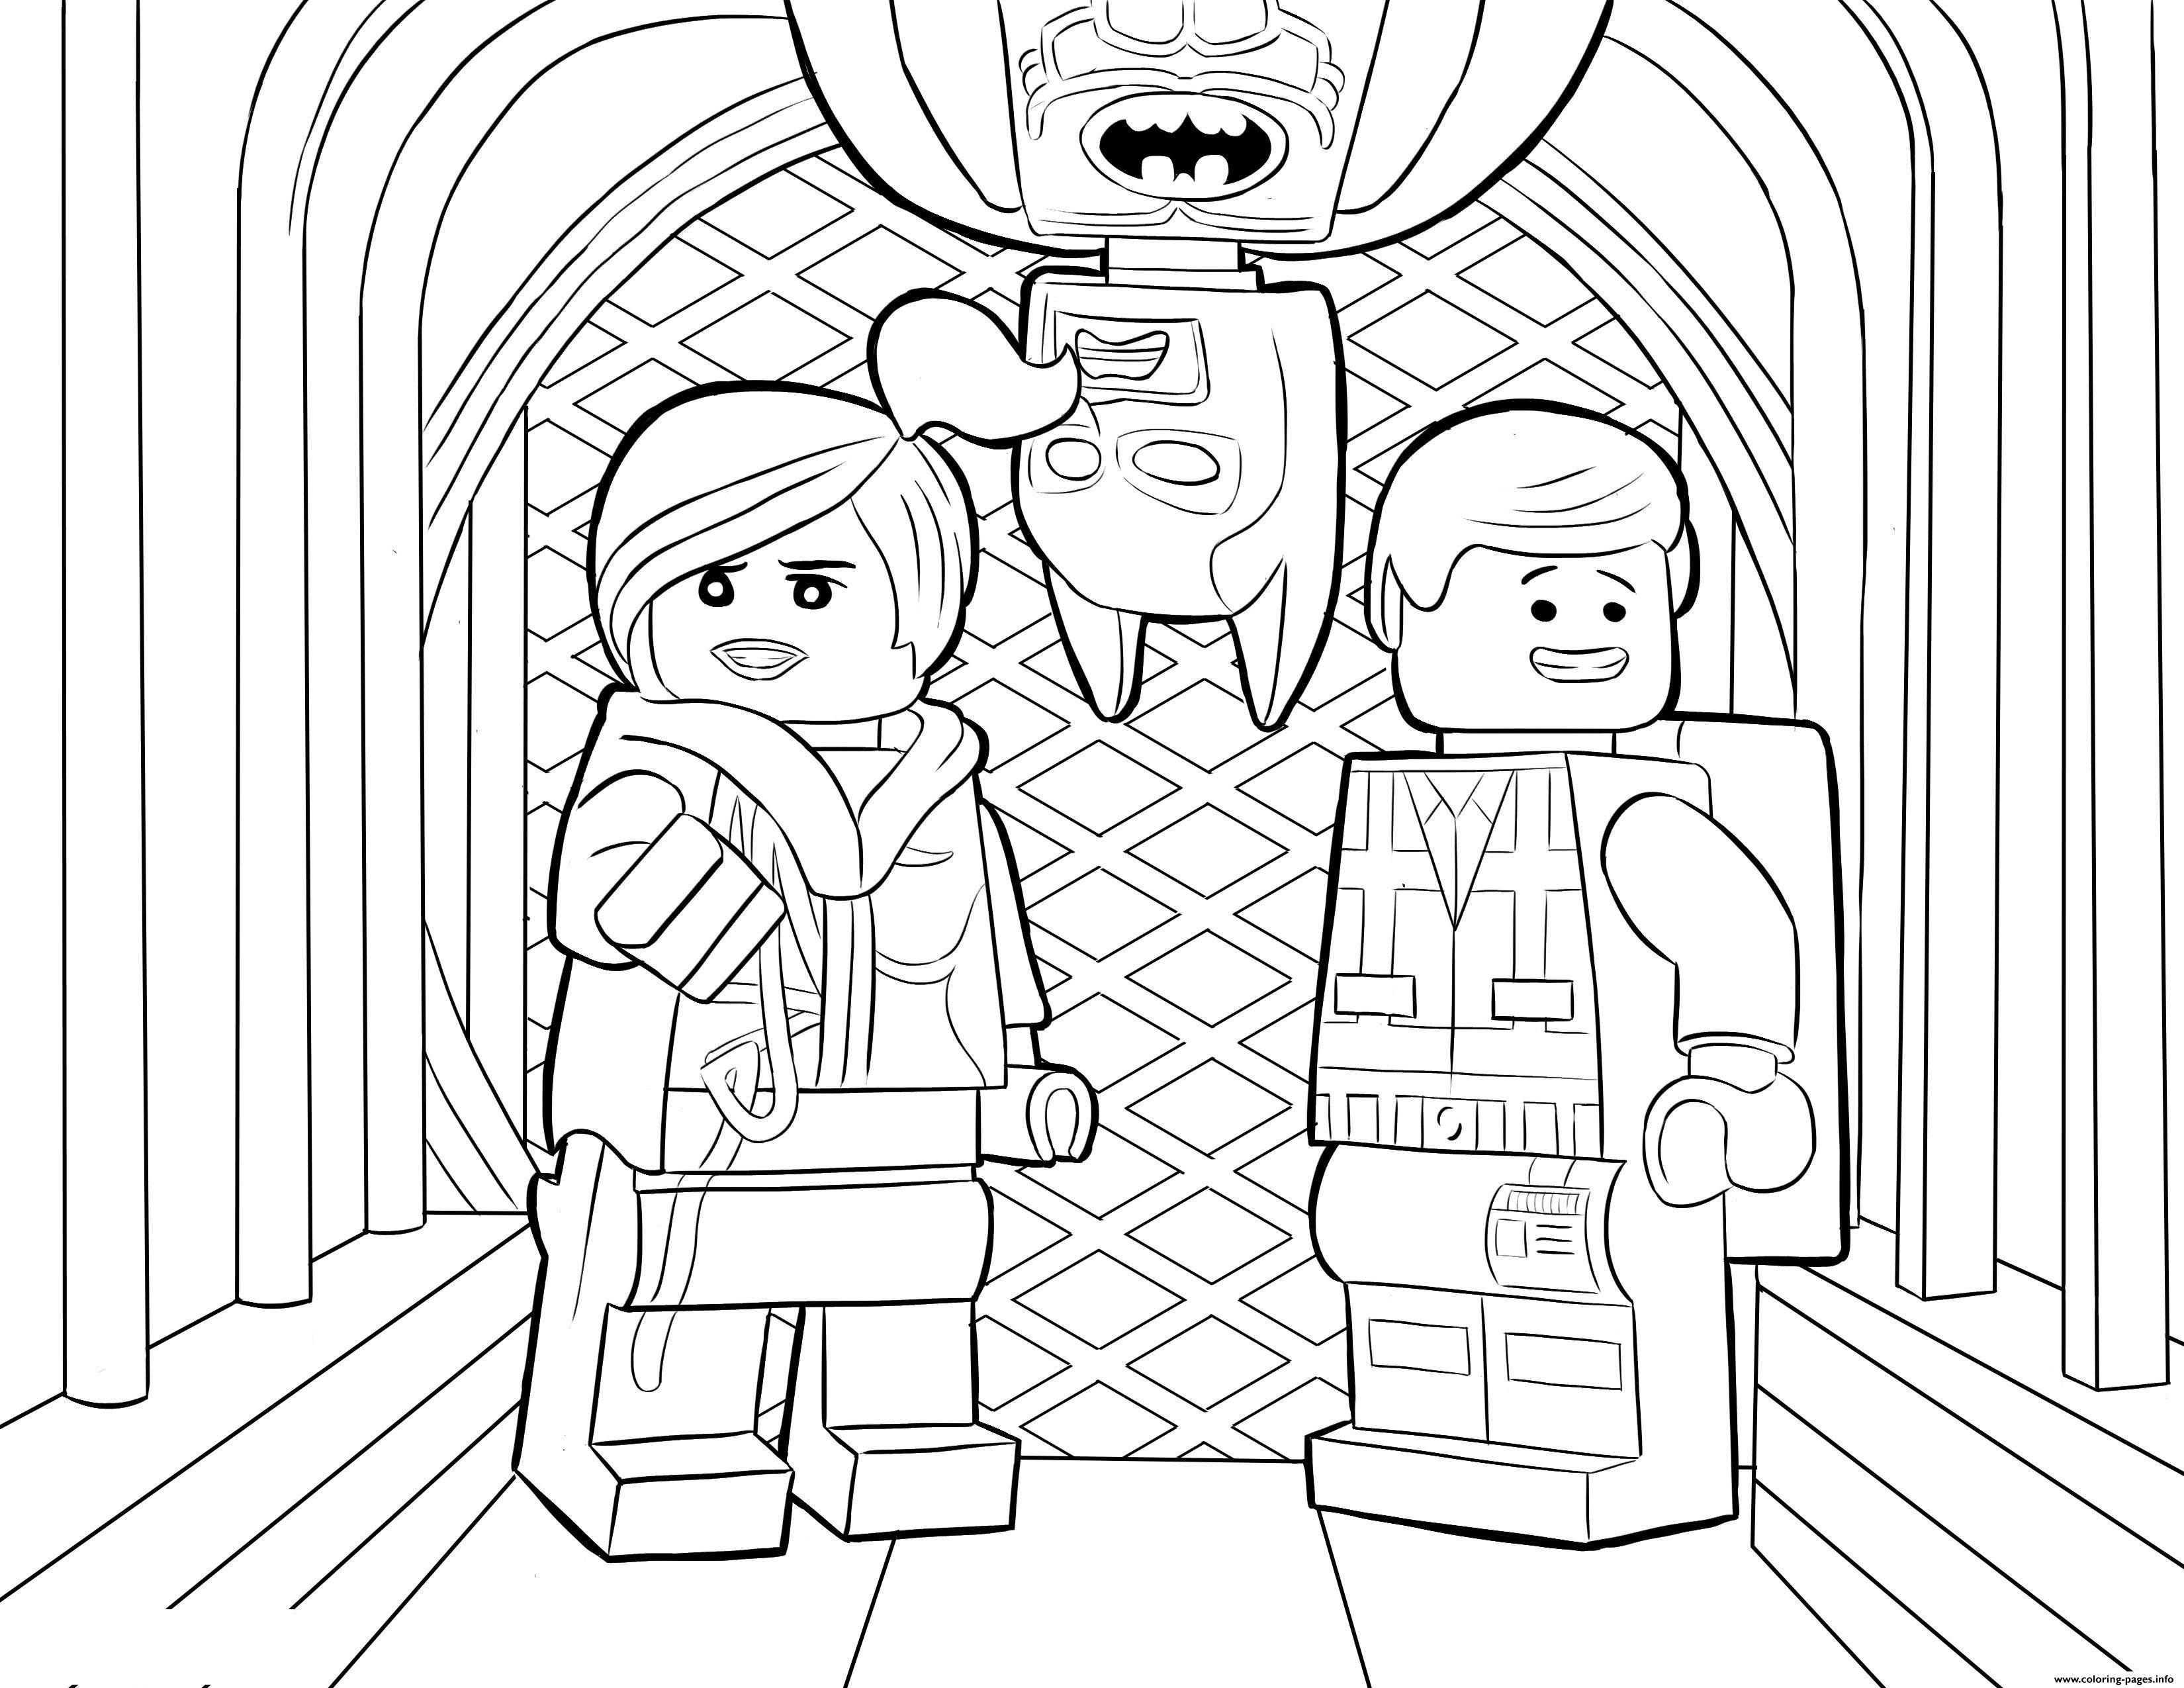 Lego Batman Sheet coloring pages